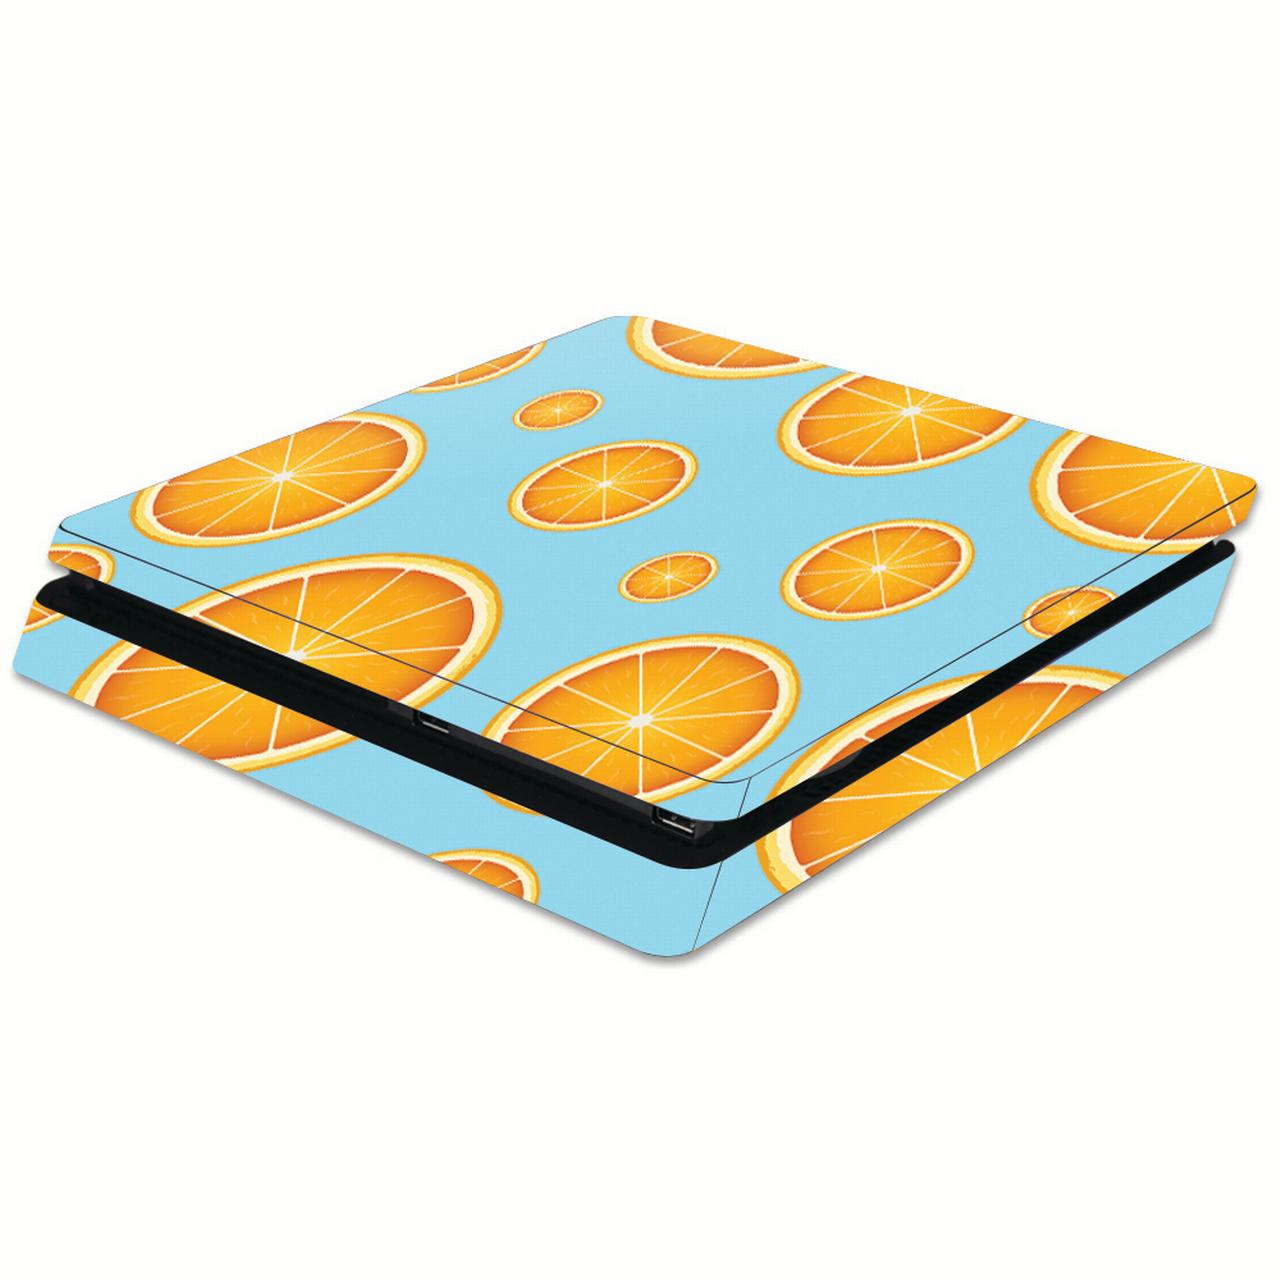 MightySkins Protective Vinyl Skin Decal for Sony PlayStation 4 PS4 Console Case wrap cover sticker skins Abstract Garden